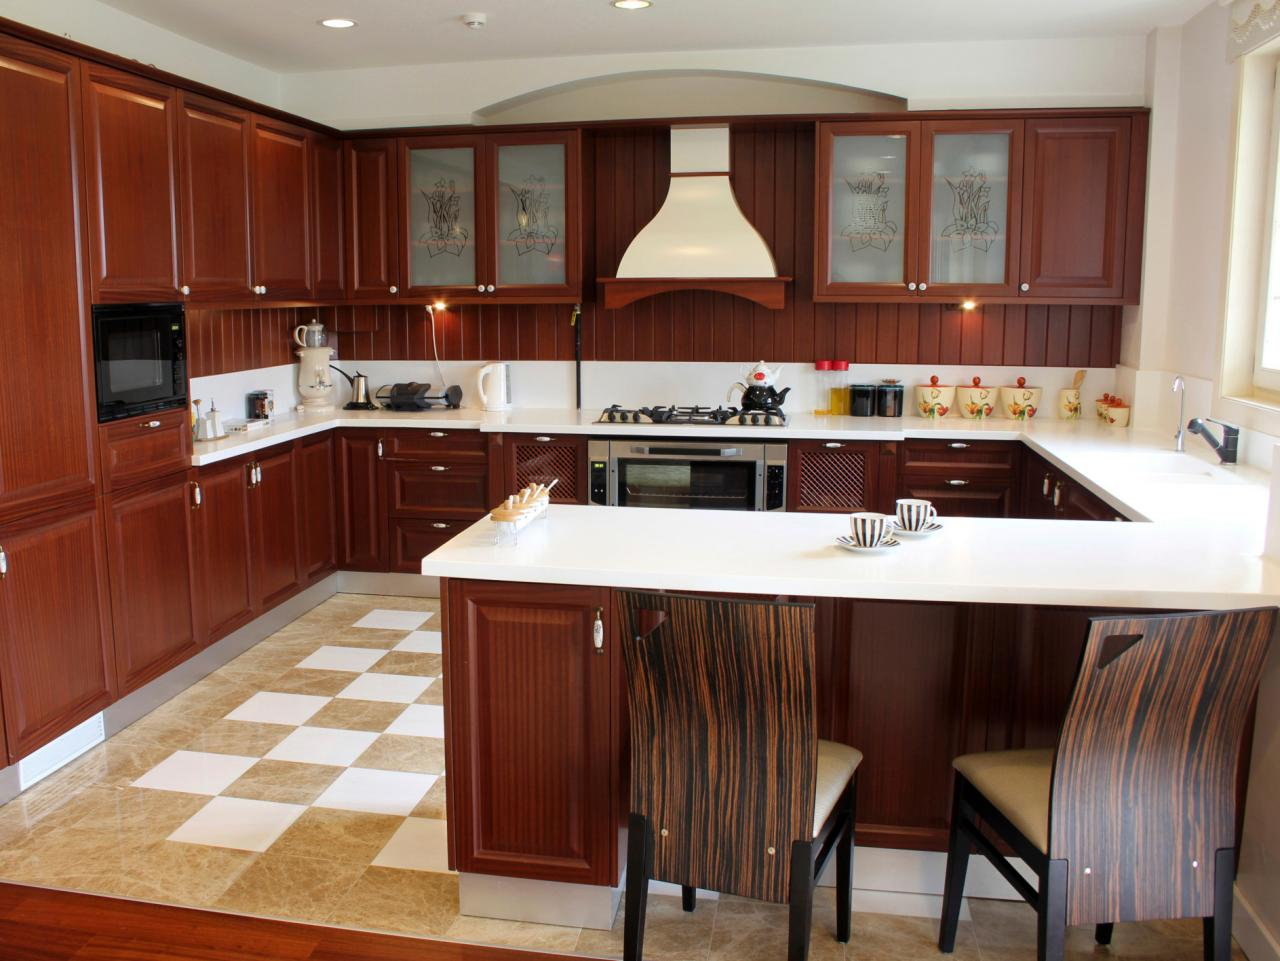 U shaped kitchens hgtv for 11 x 8 kitchen designs